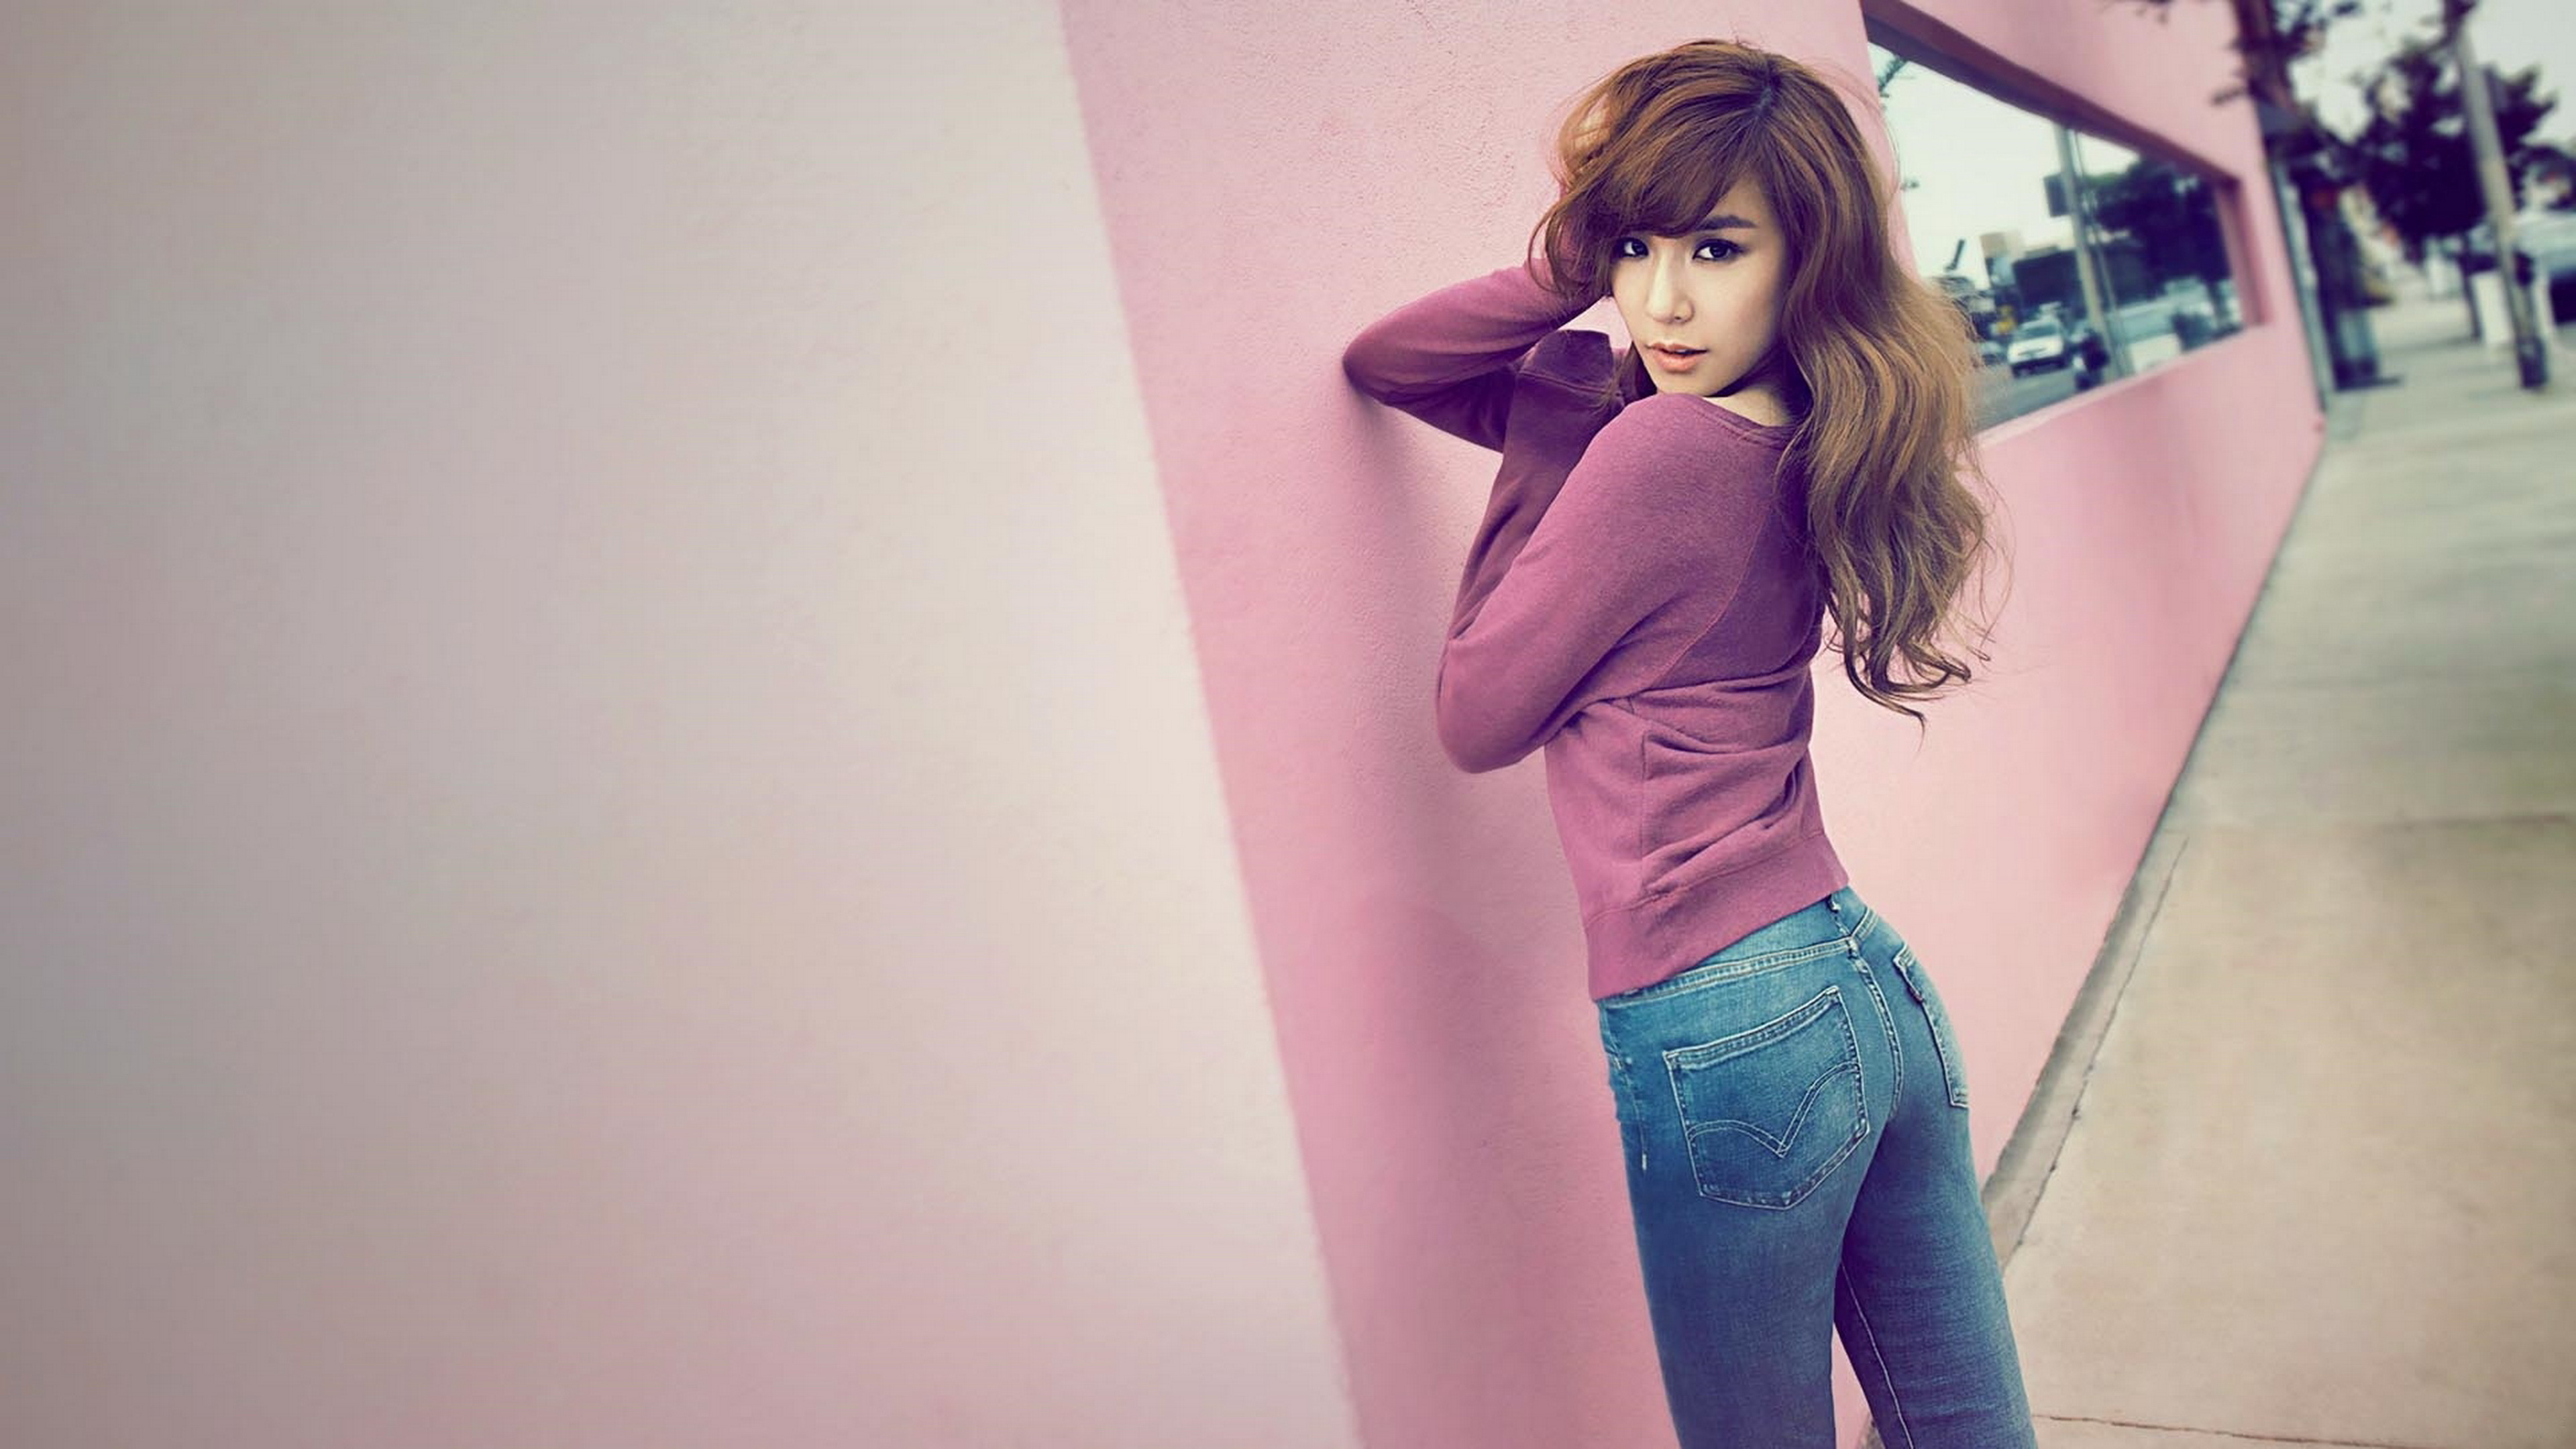 tiffany hwang widescreen wallpaper 61111